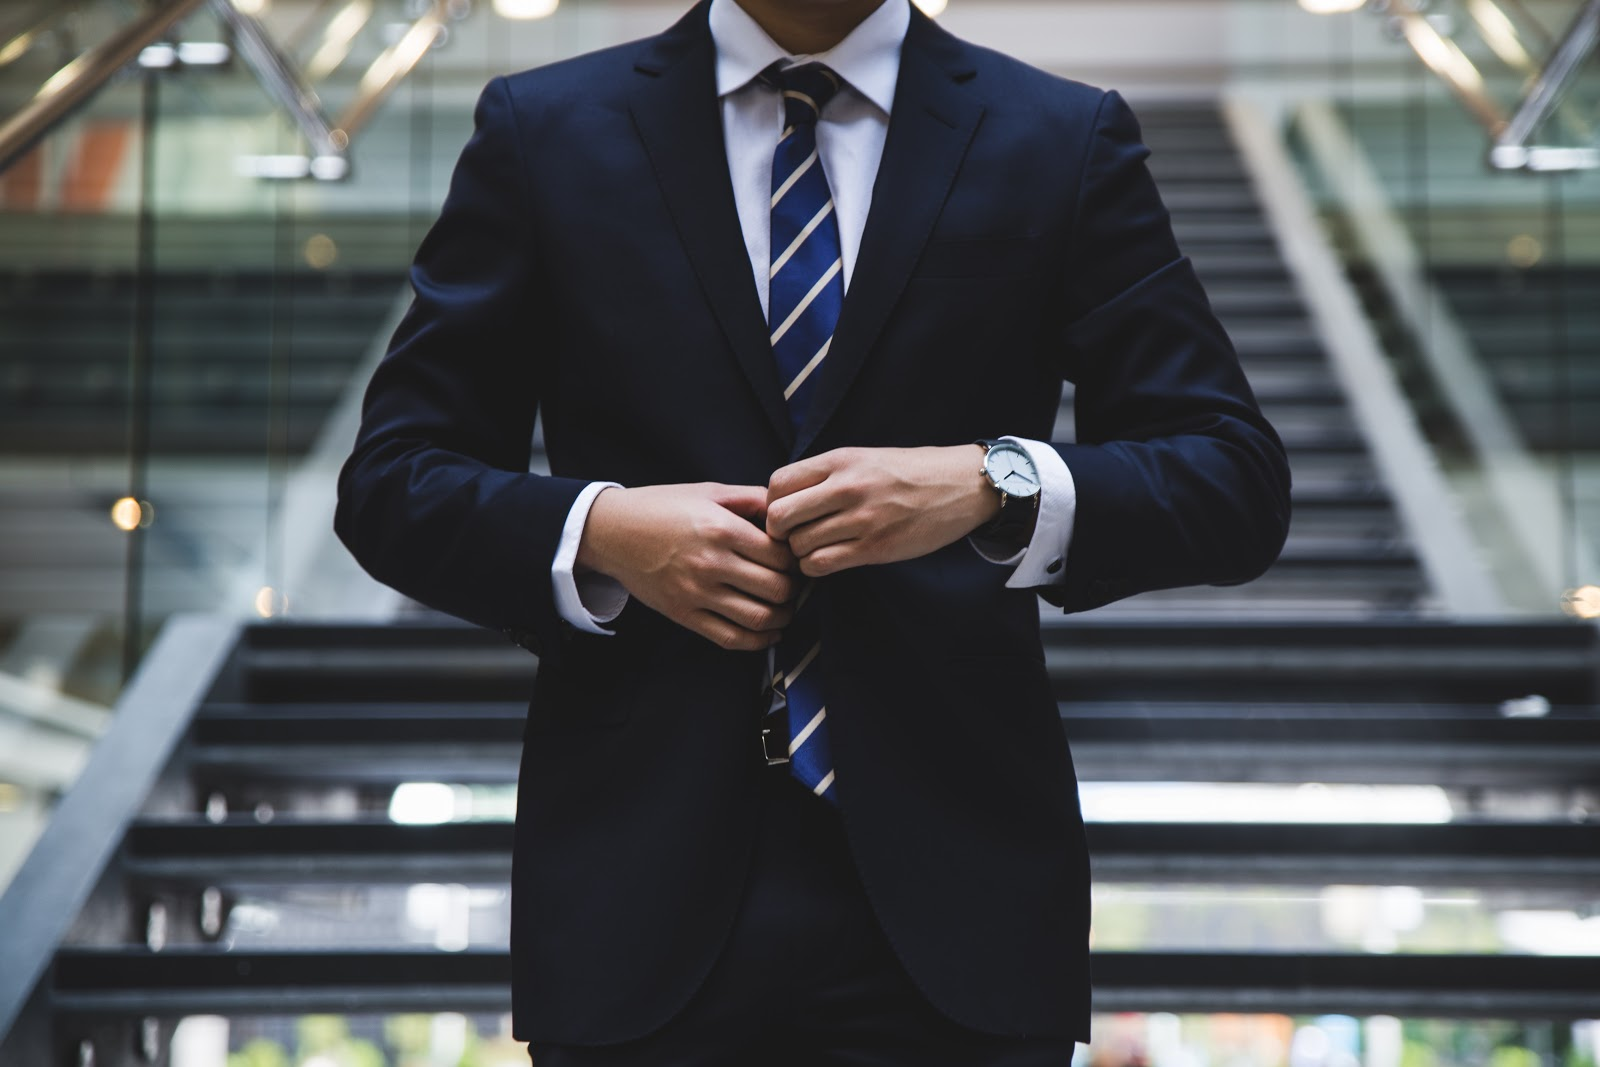 Person wearing a suit.